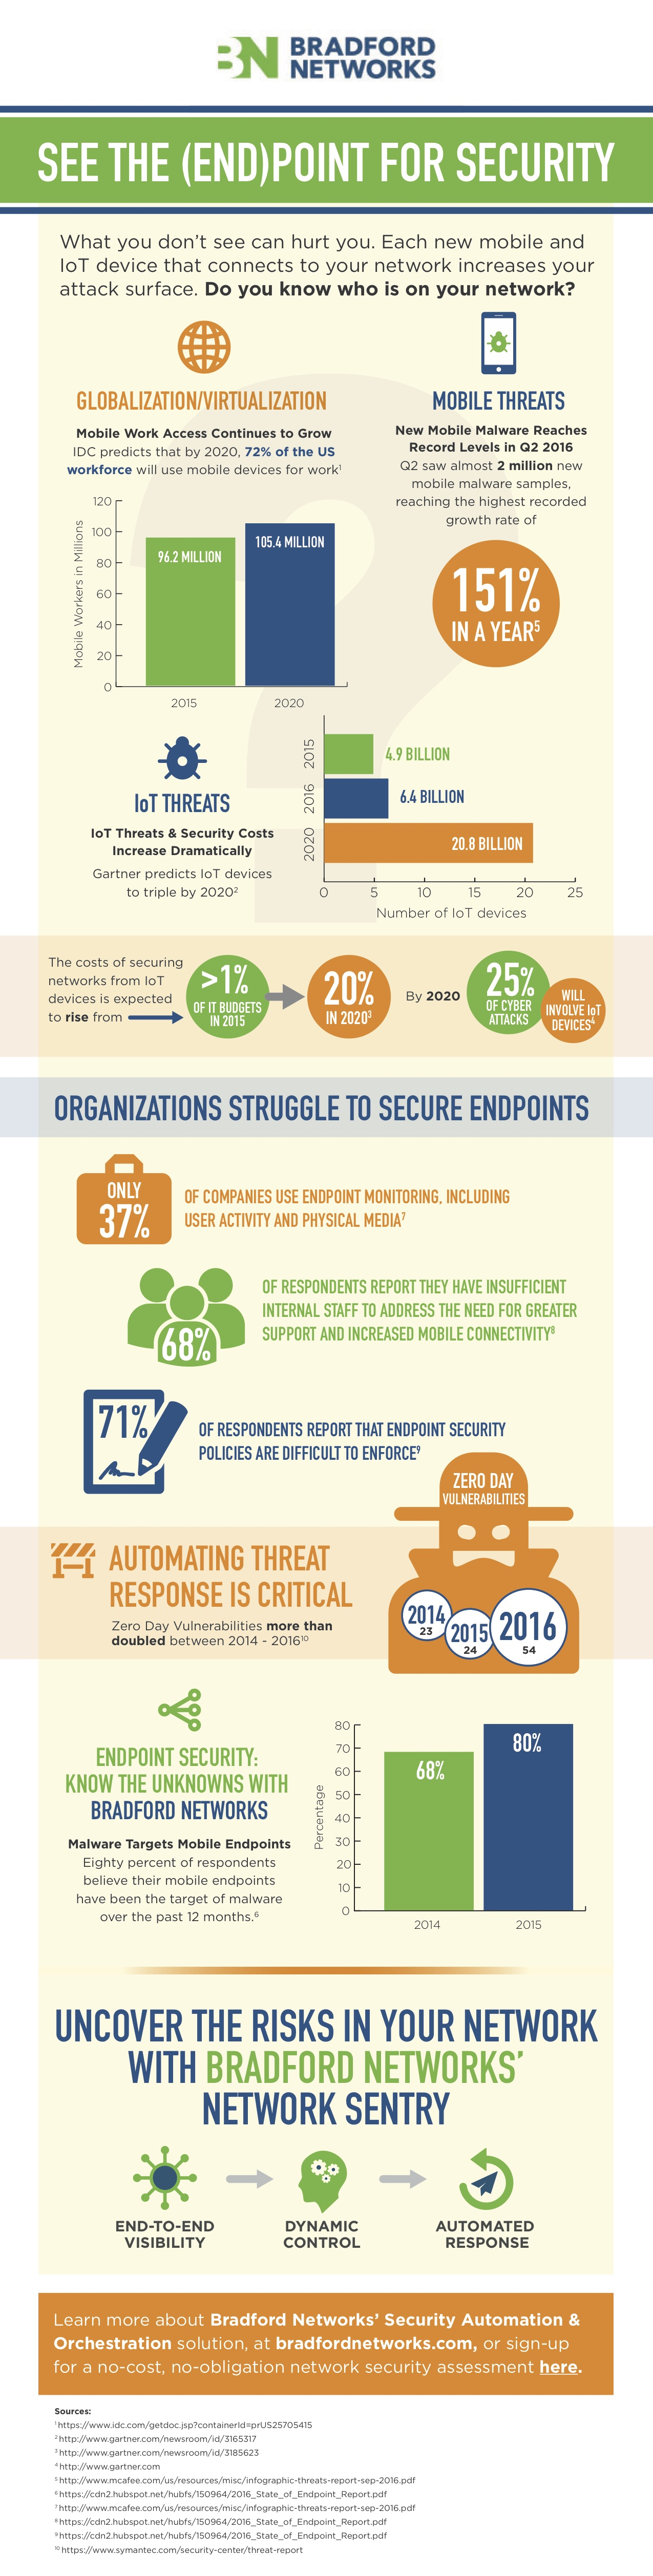 2017 Network Security Trends Infographic